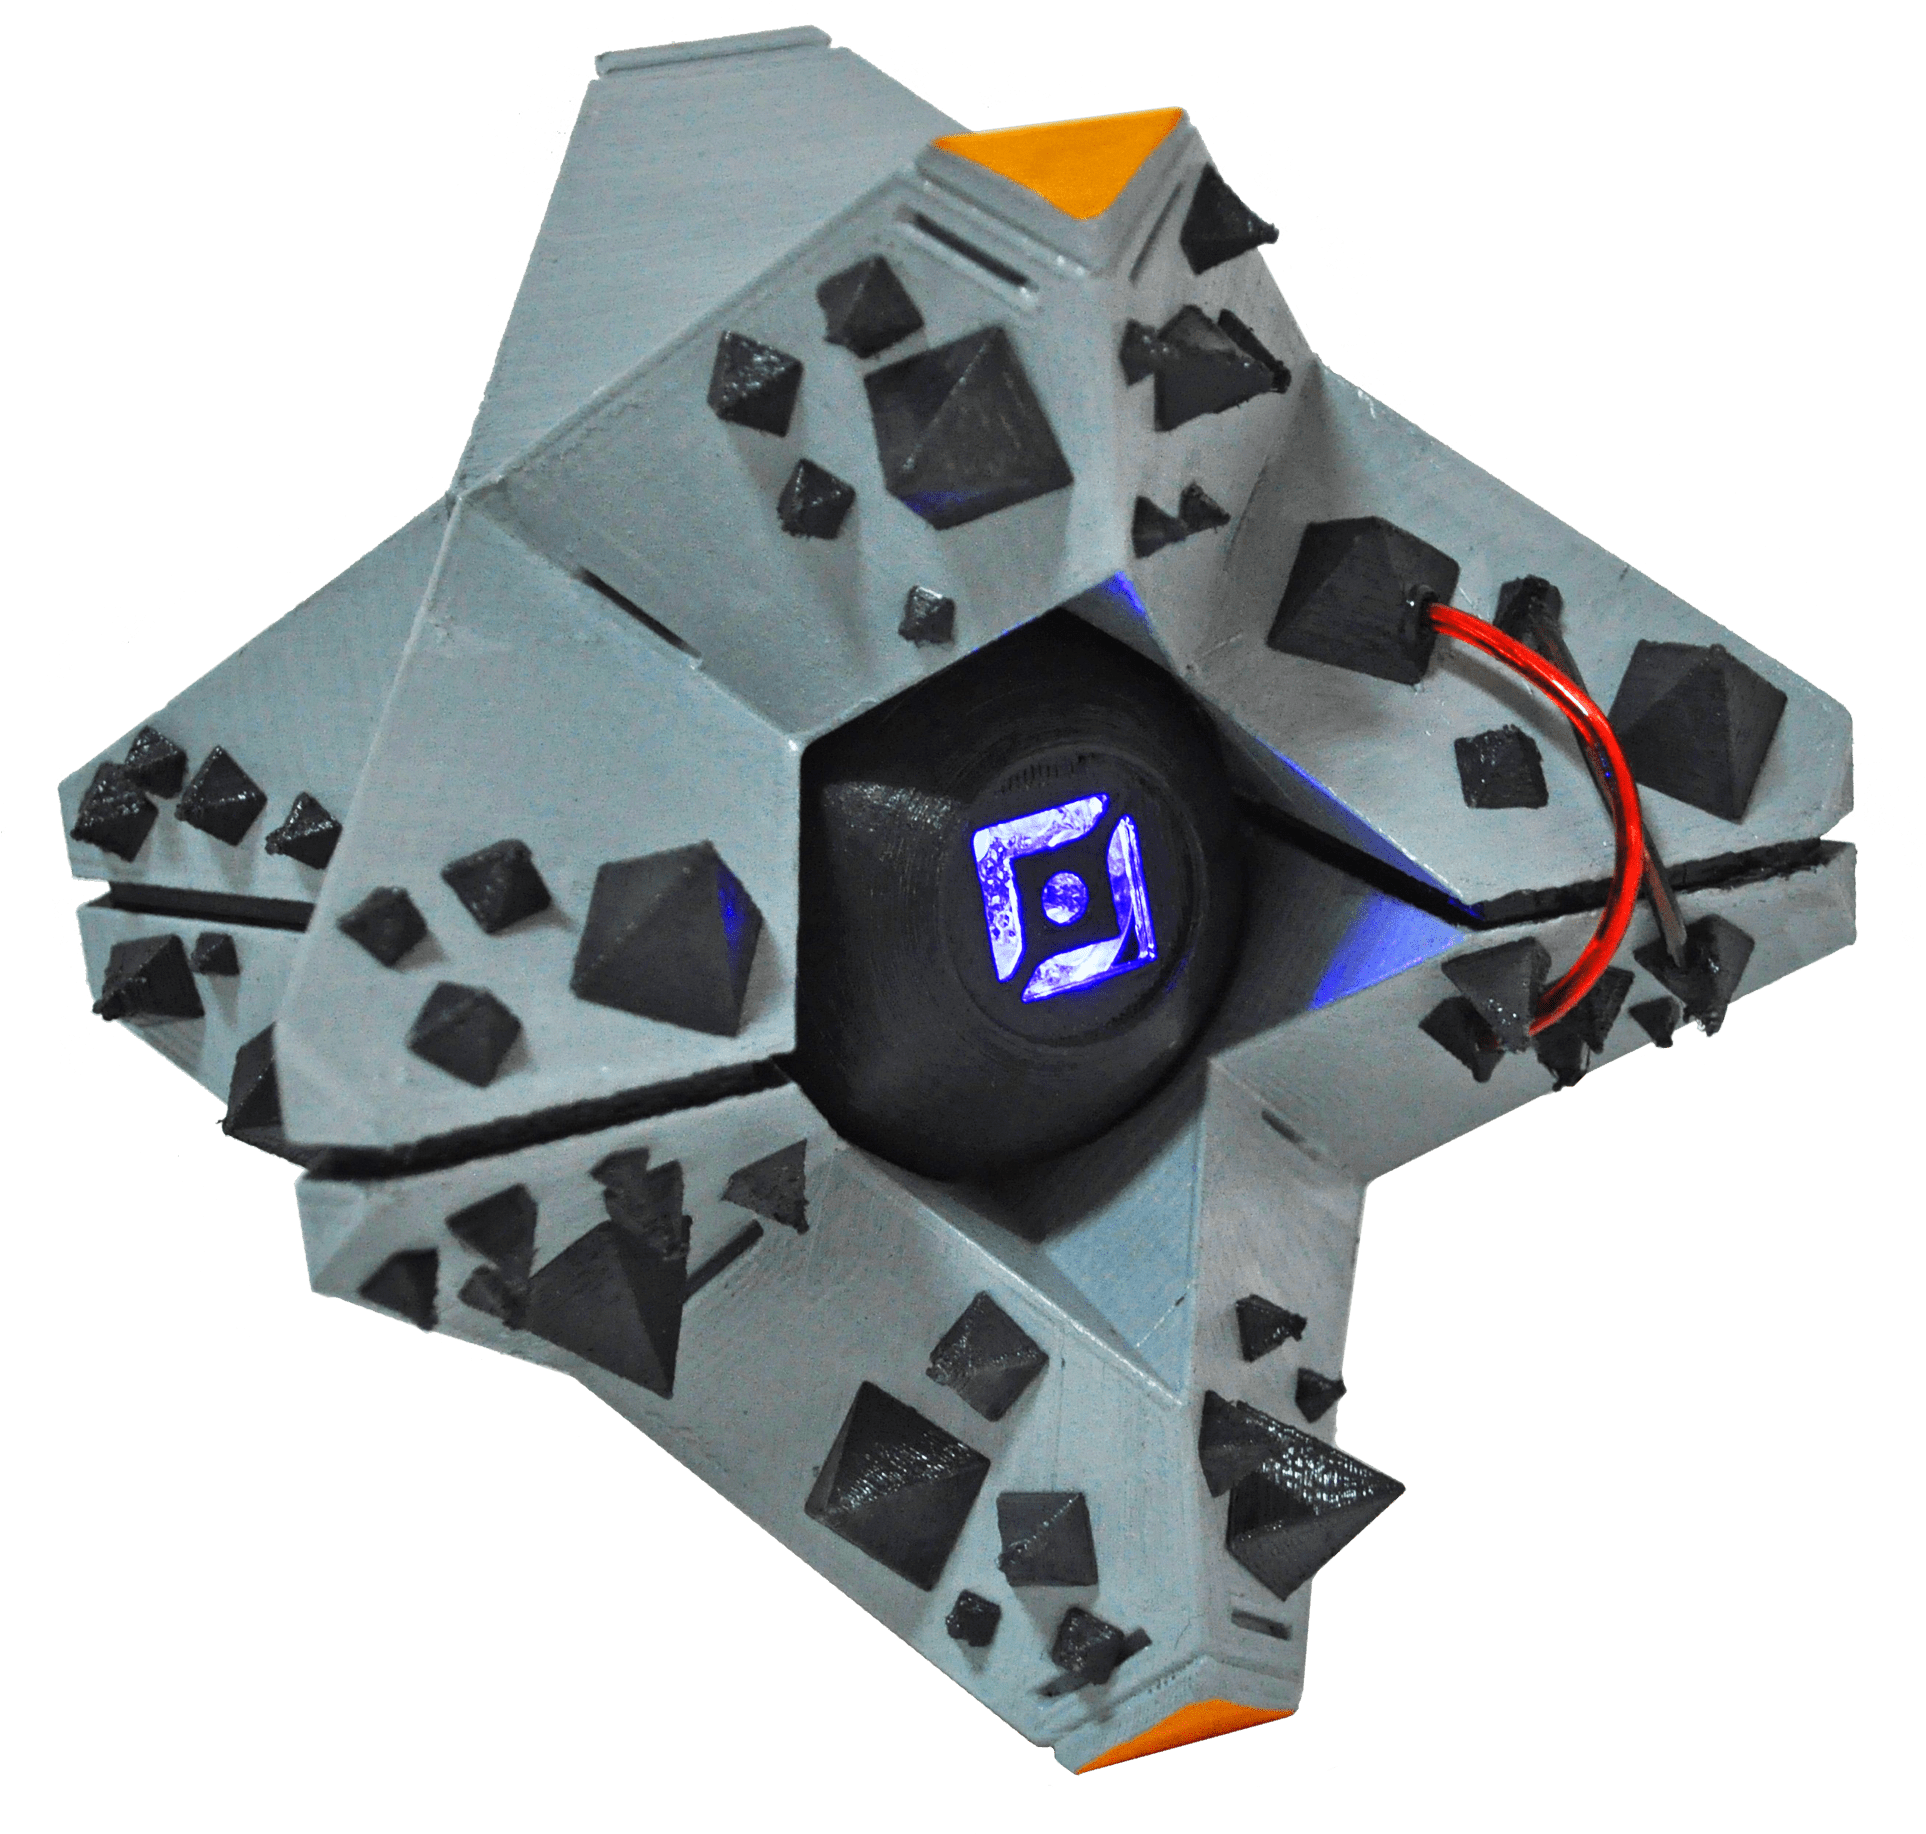 Download Full Sized Ghost Infection Shell Destiny 2 Ghost Shells Png Full Size Png Image Pngkit